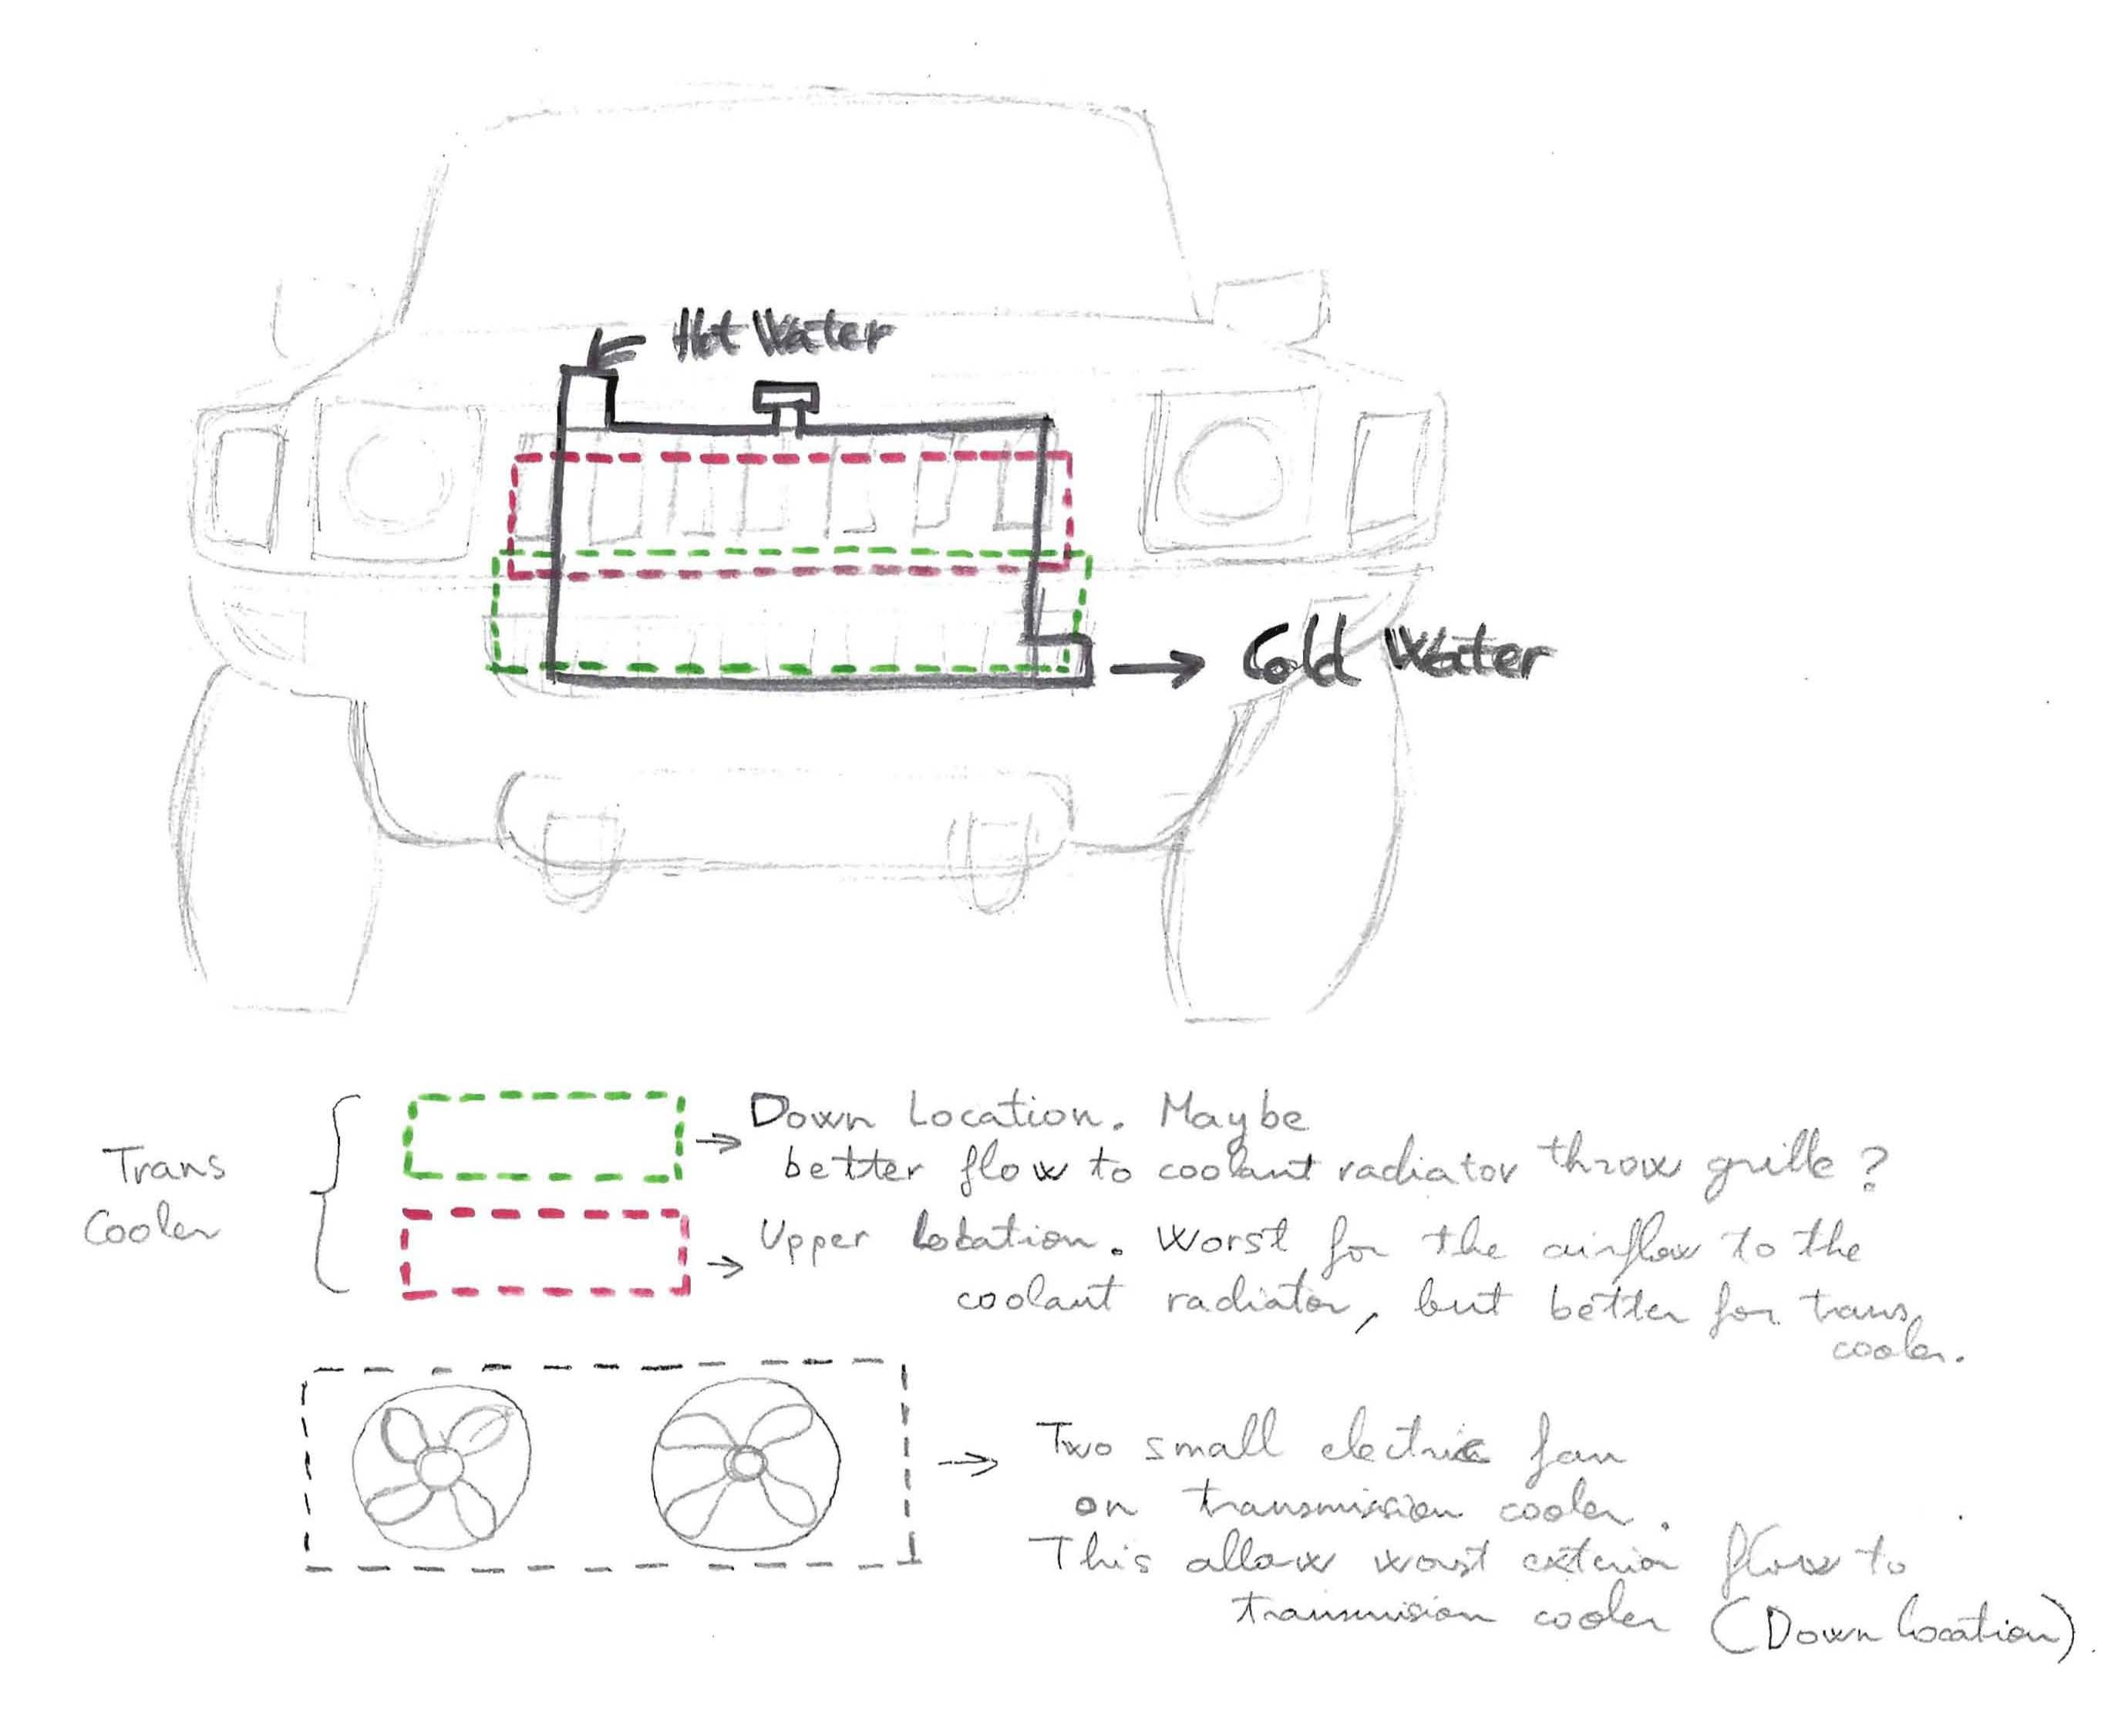 Transmission Cooler Installation Diagram Tru Cool Gvw Transmission Cooler Location Sahara Desert Trip Of Transmission Cooler Installation Diagram